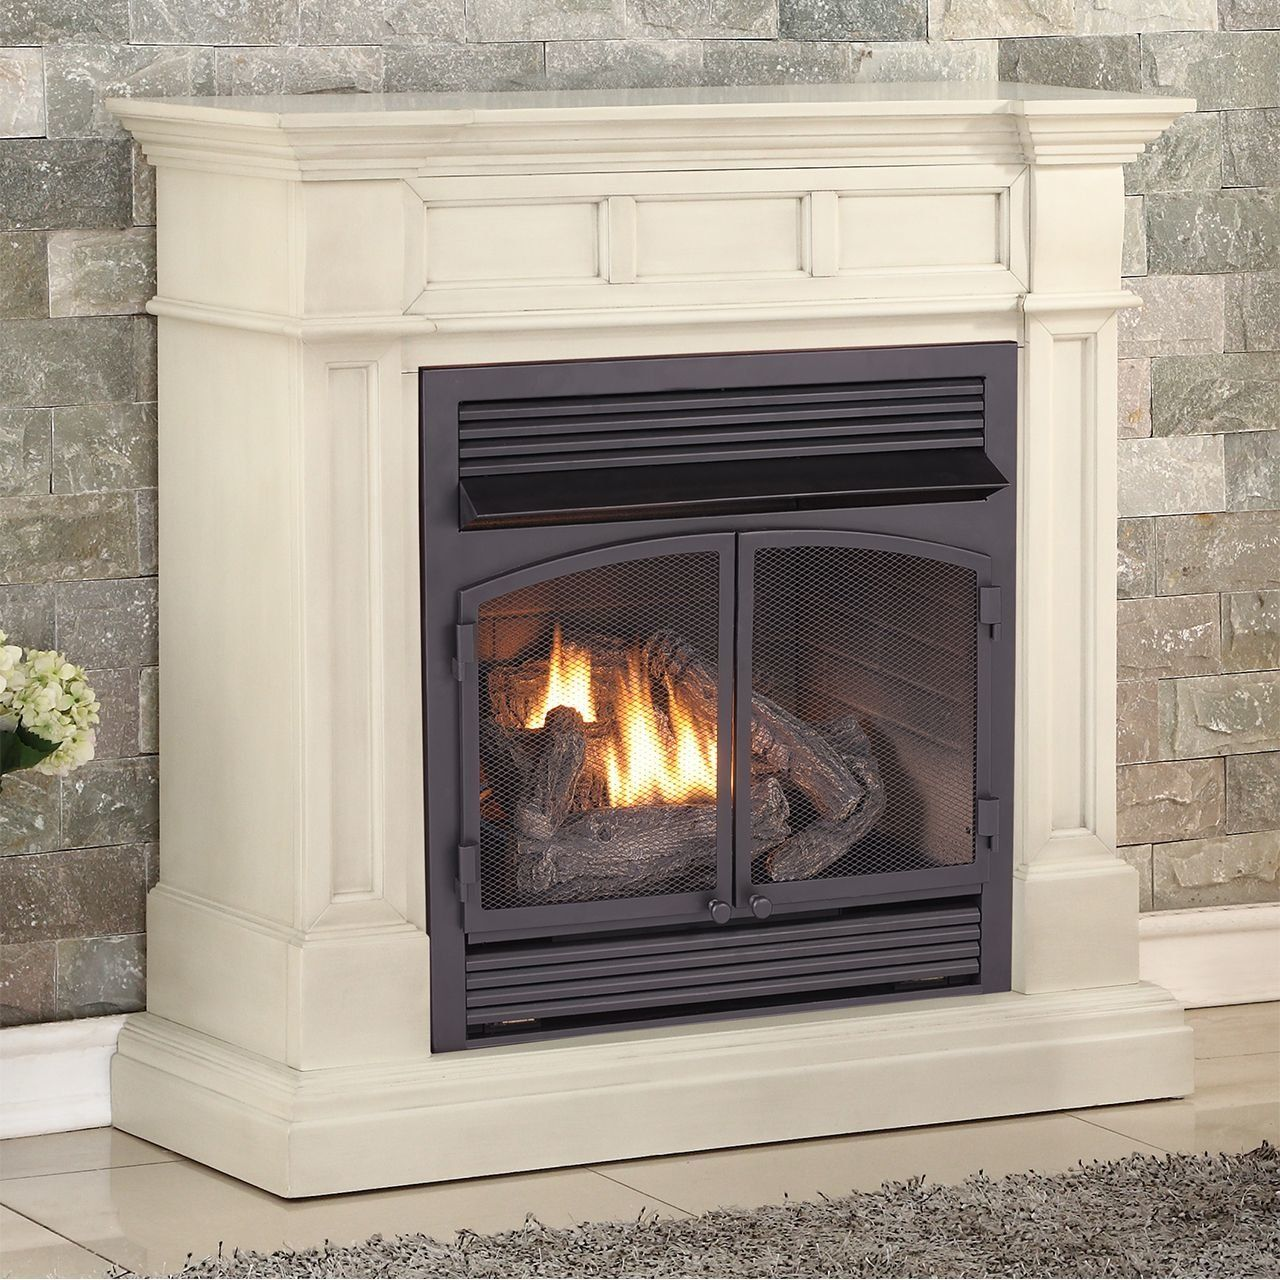 Super Vent Free Natural Gas Propane Fireplace Fireplace In 2019 Home Interior And Landscaping Ponolsignezvosmurscom